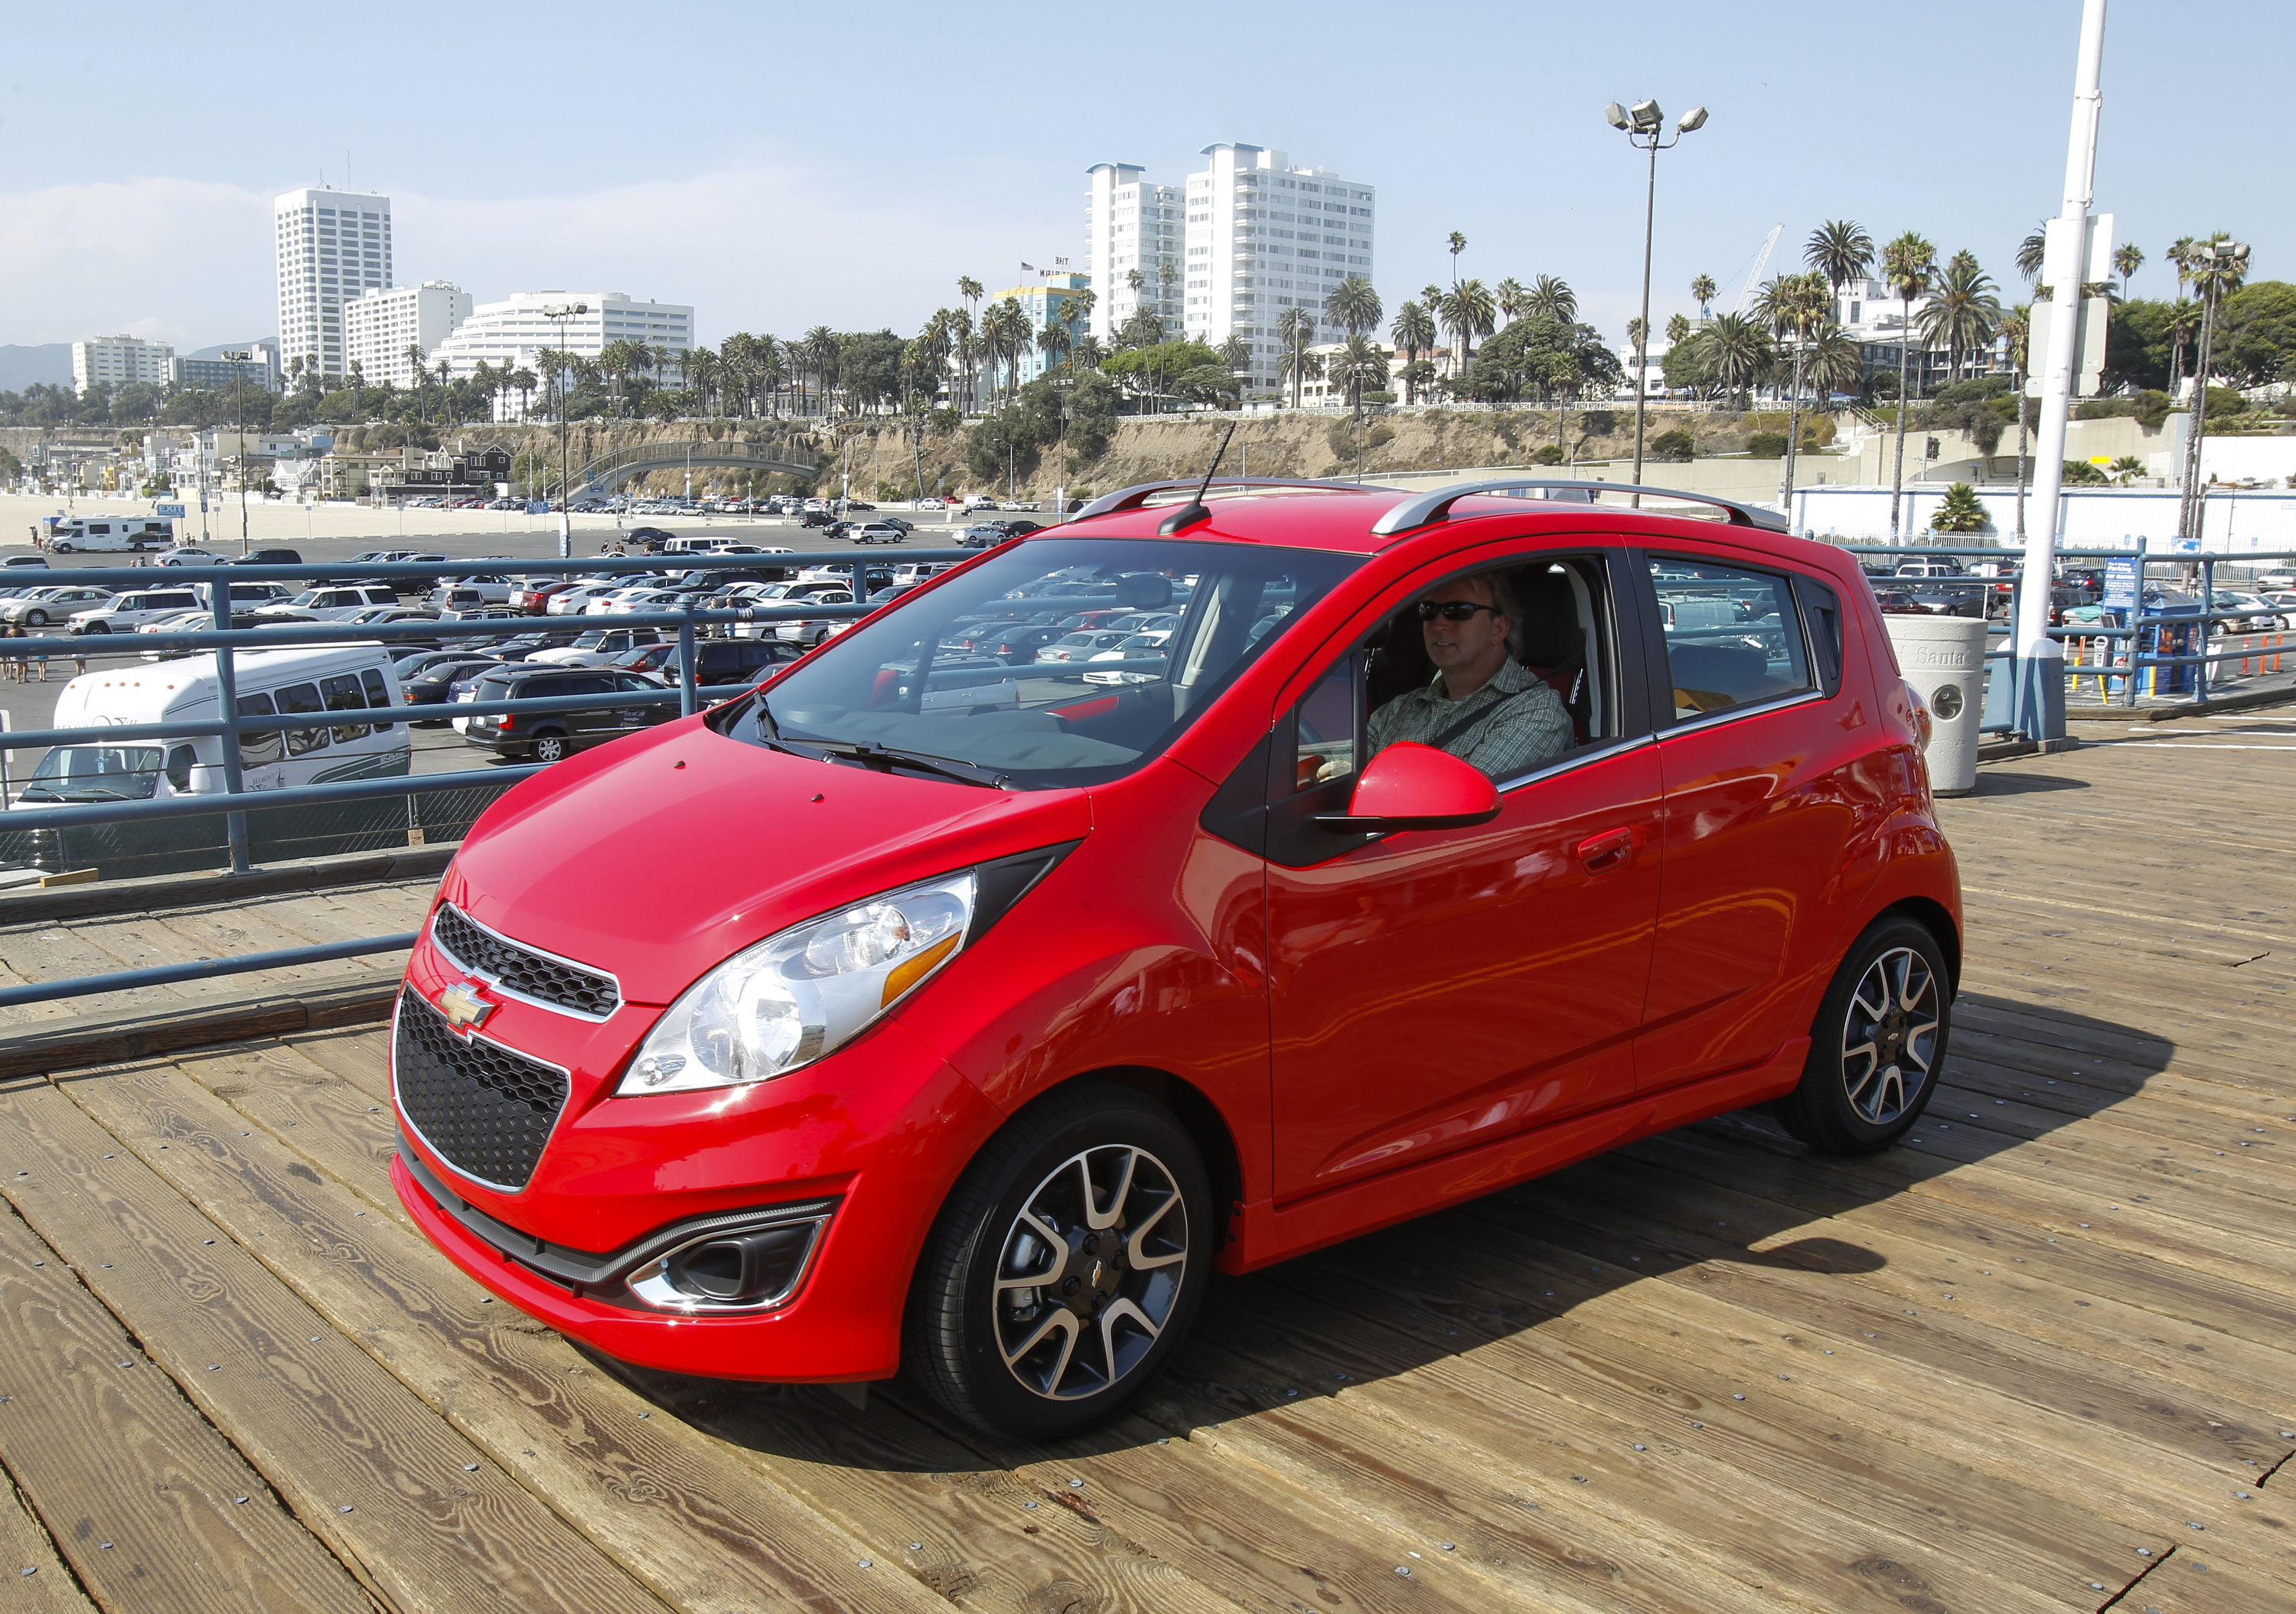 Joe Basil Chevy >> All-New 2013 Chevrolet Spark Mini Car Now Available at ...